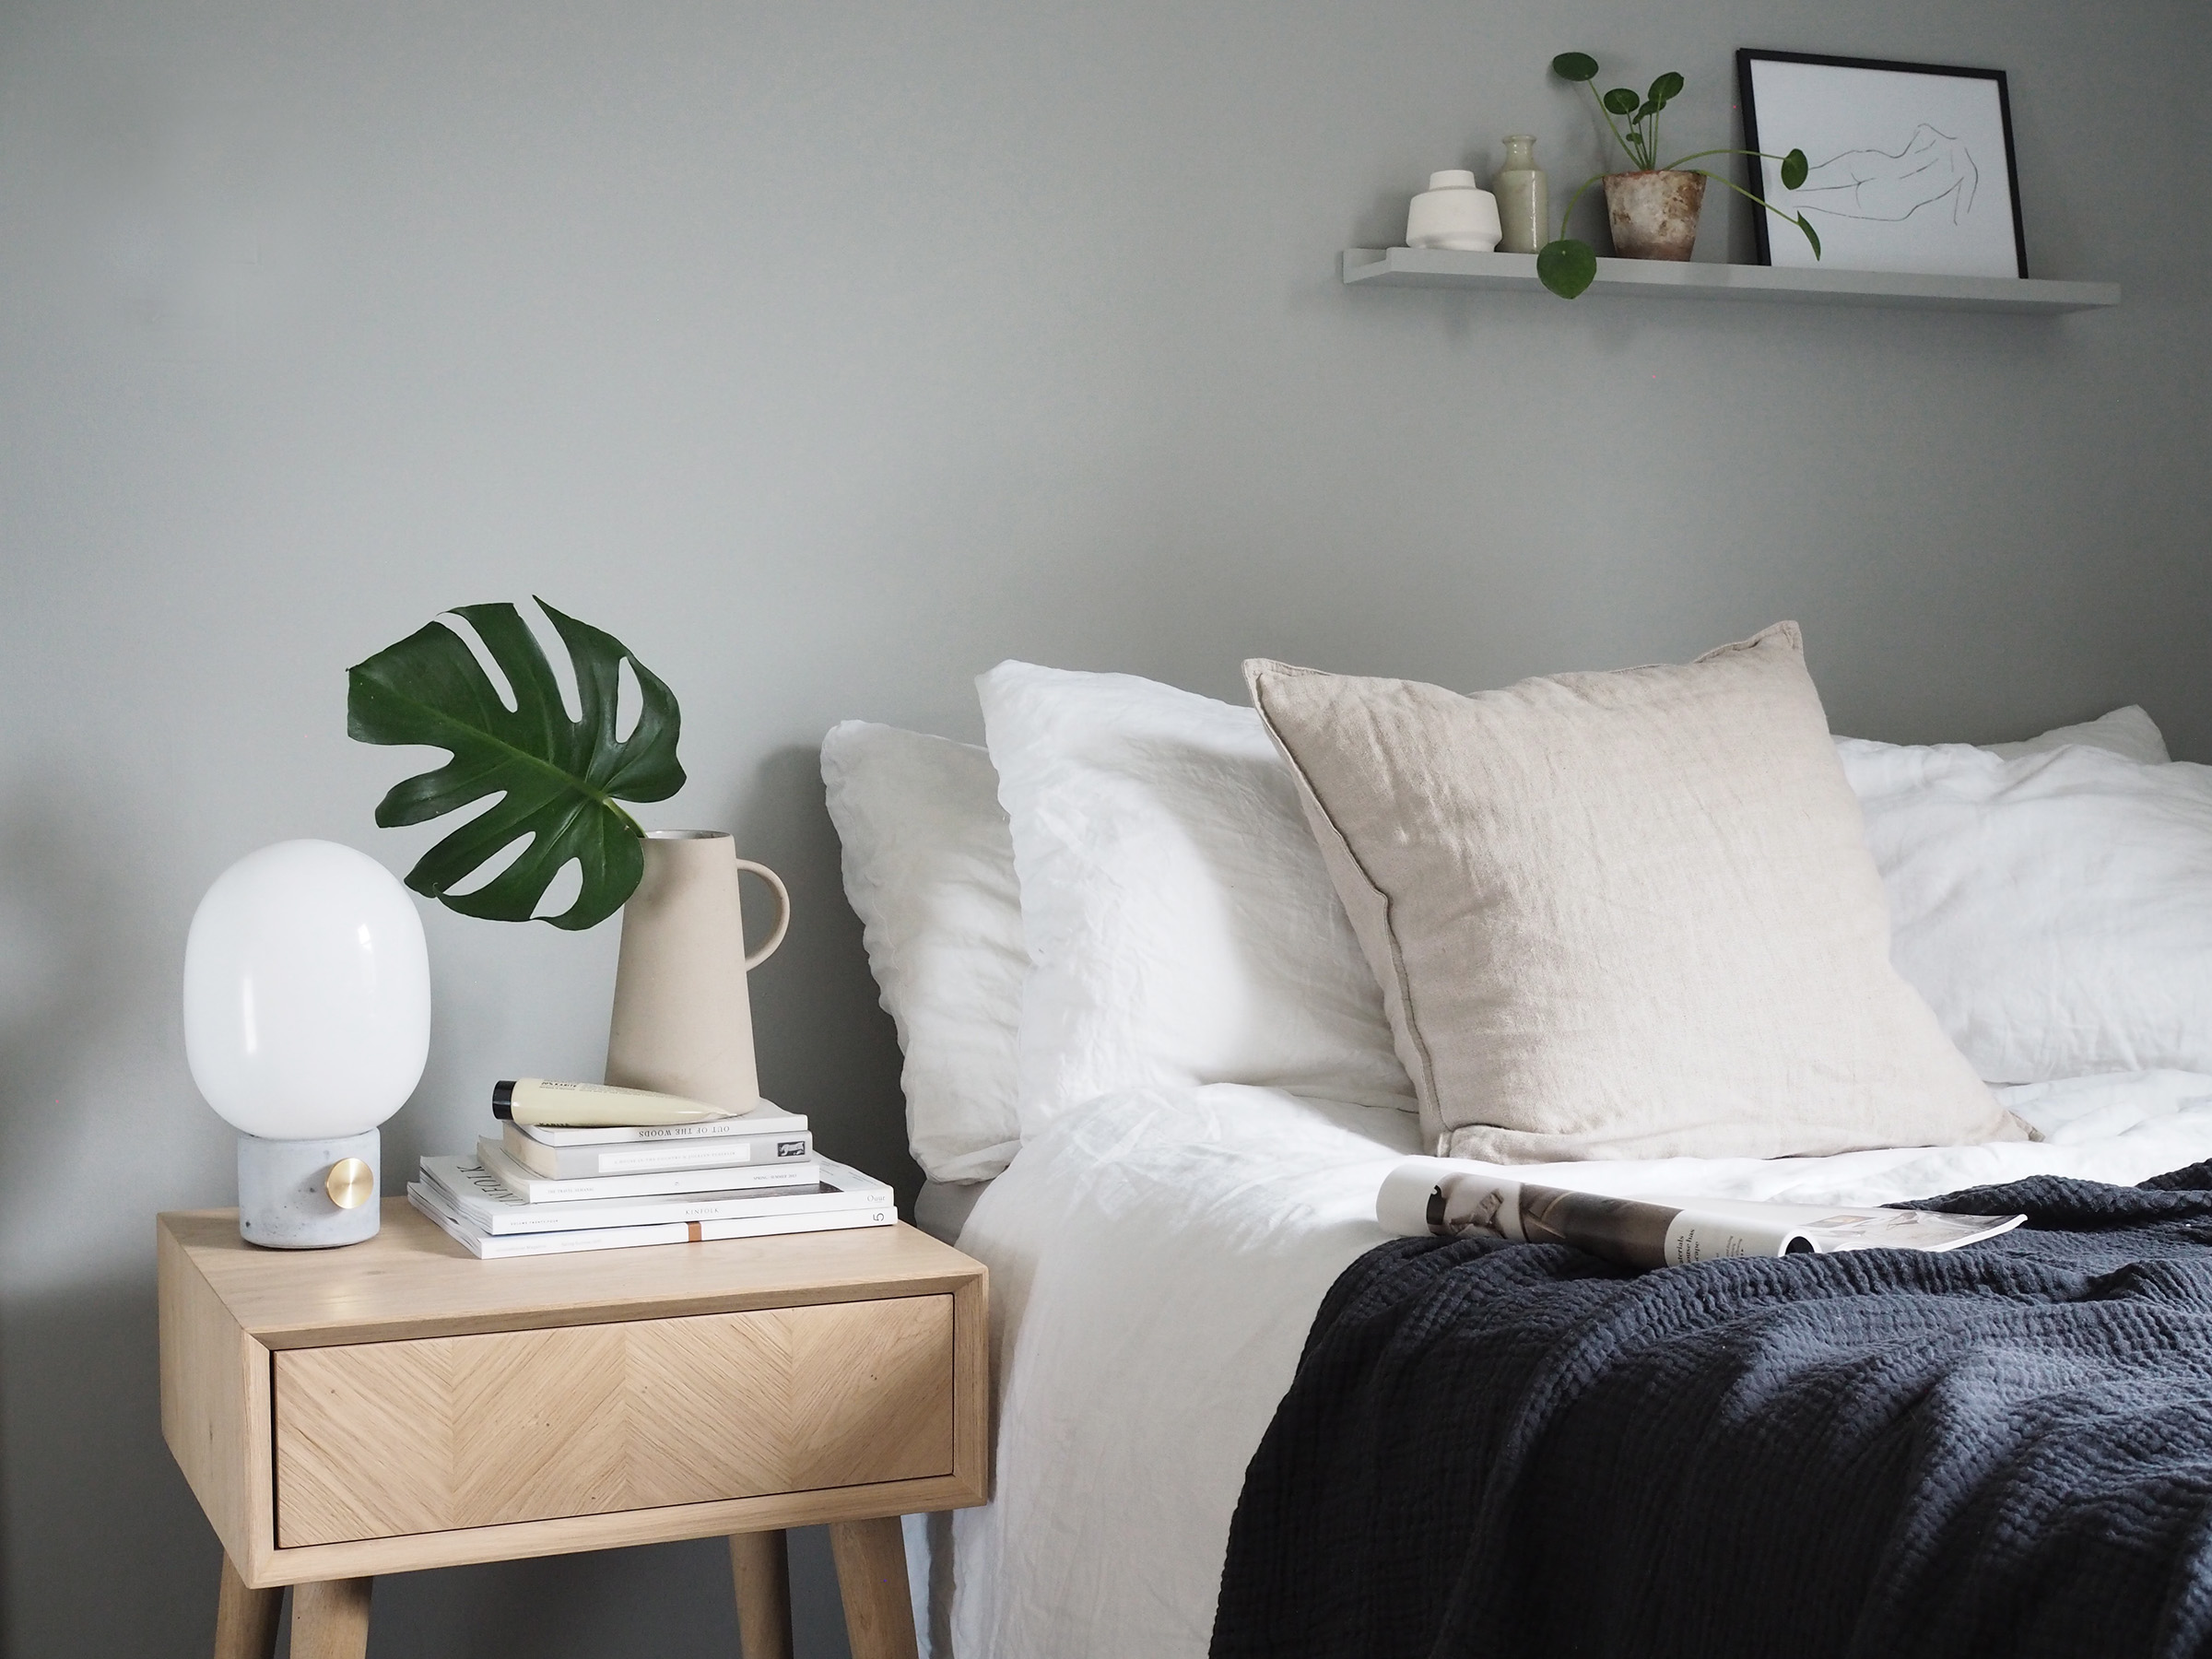 Simple Ways To Spruce Up Your Bedroom This Summer, With Houseology [AD]